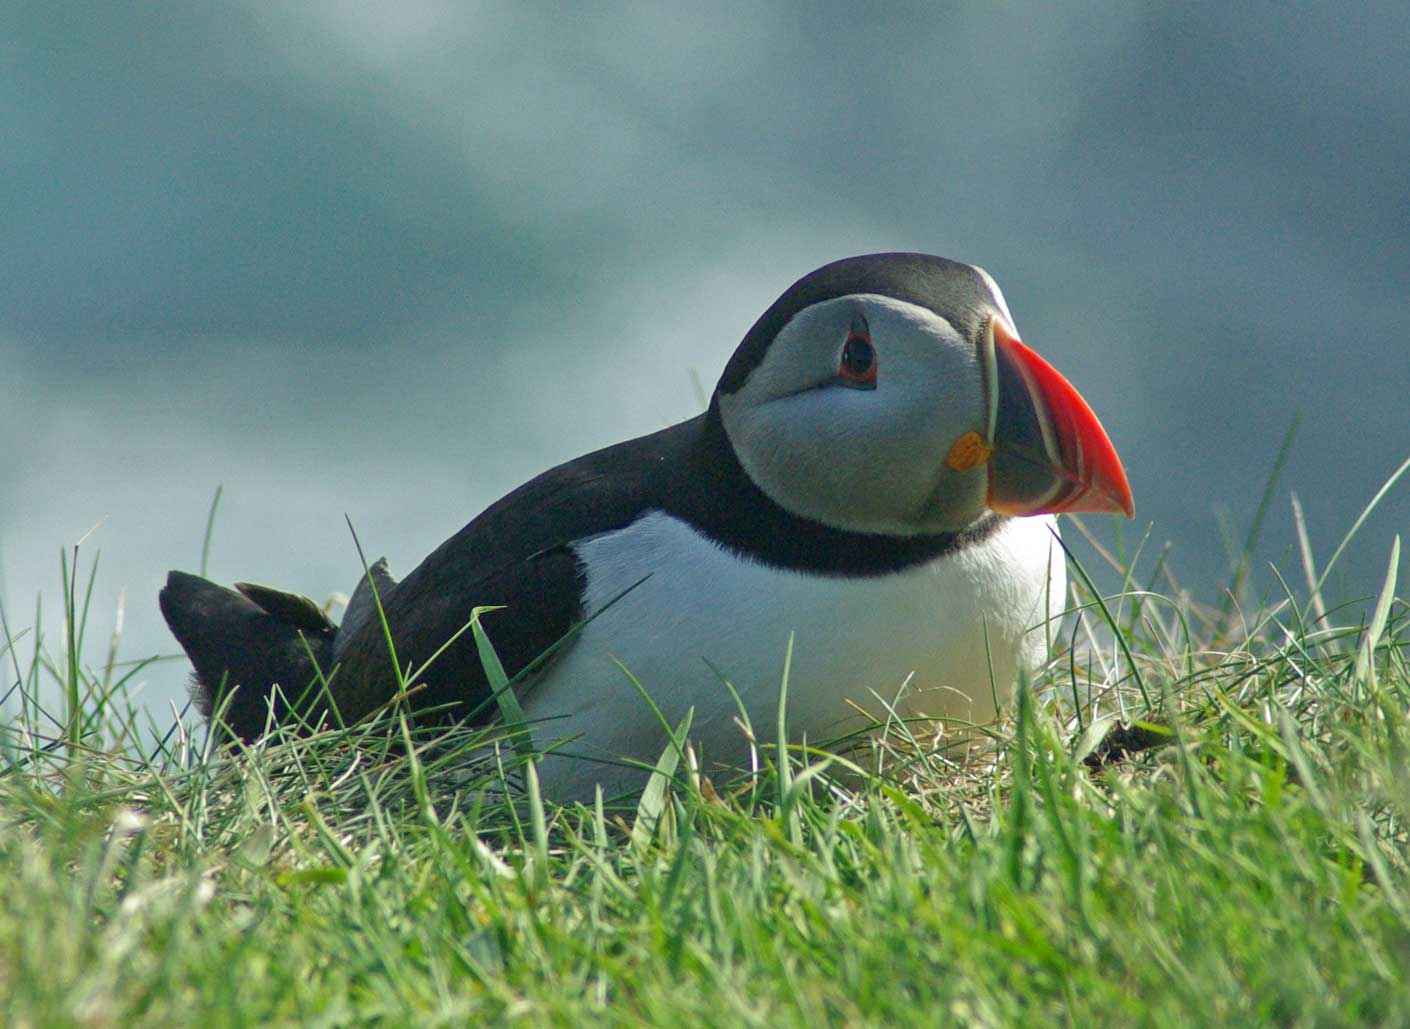 puffin-in-the-grass